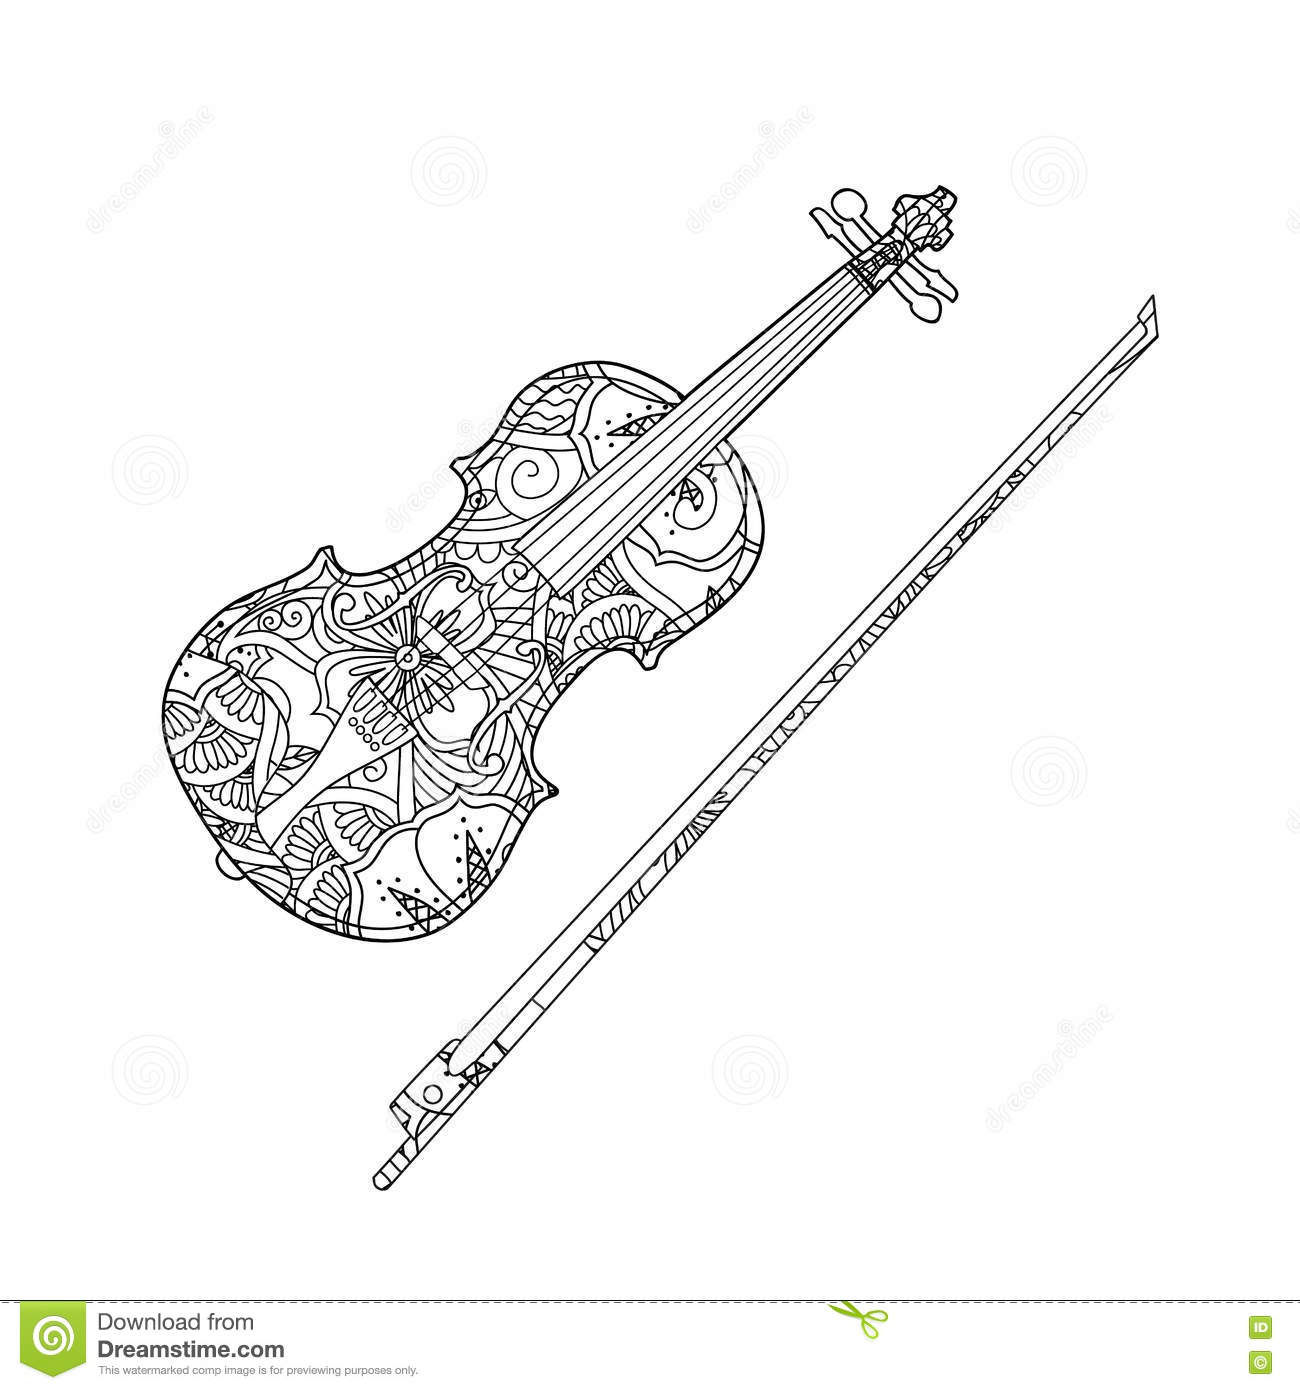 Coloring Page With Ornamental Violin And Fiddlestick